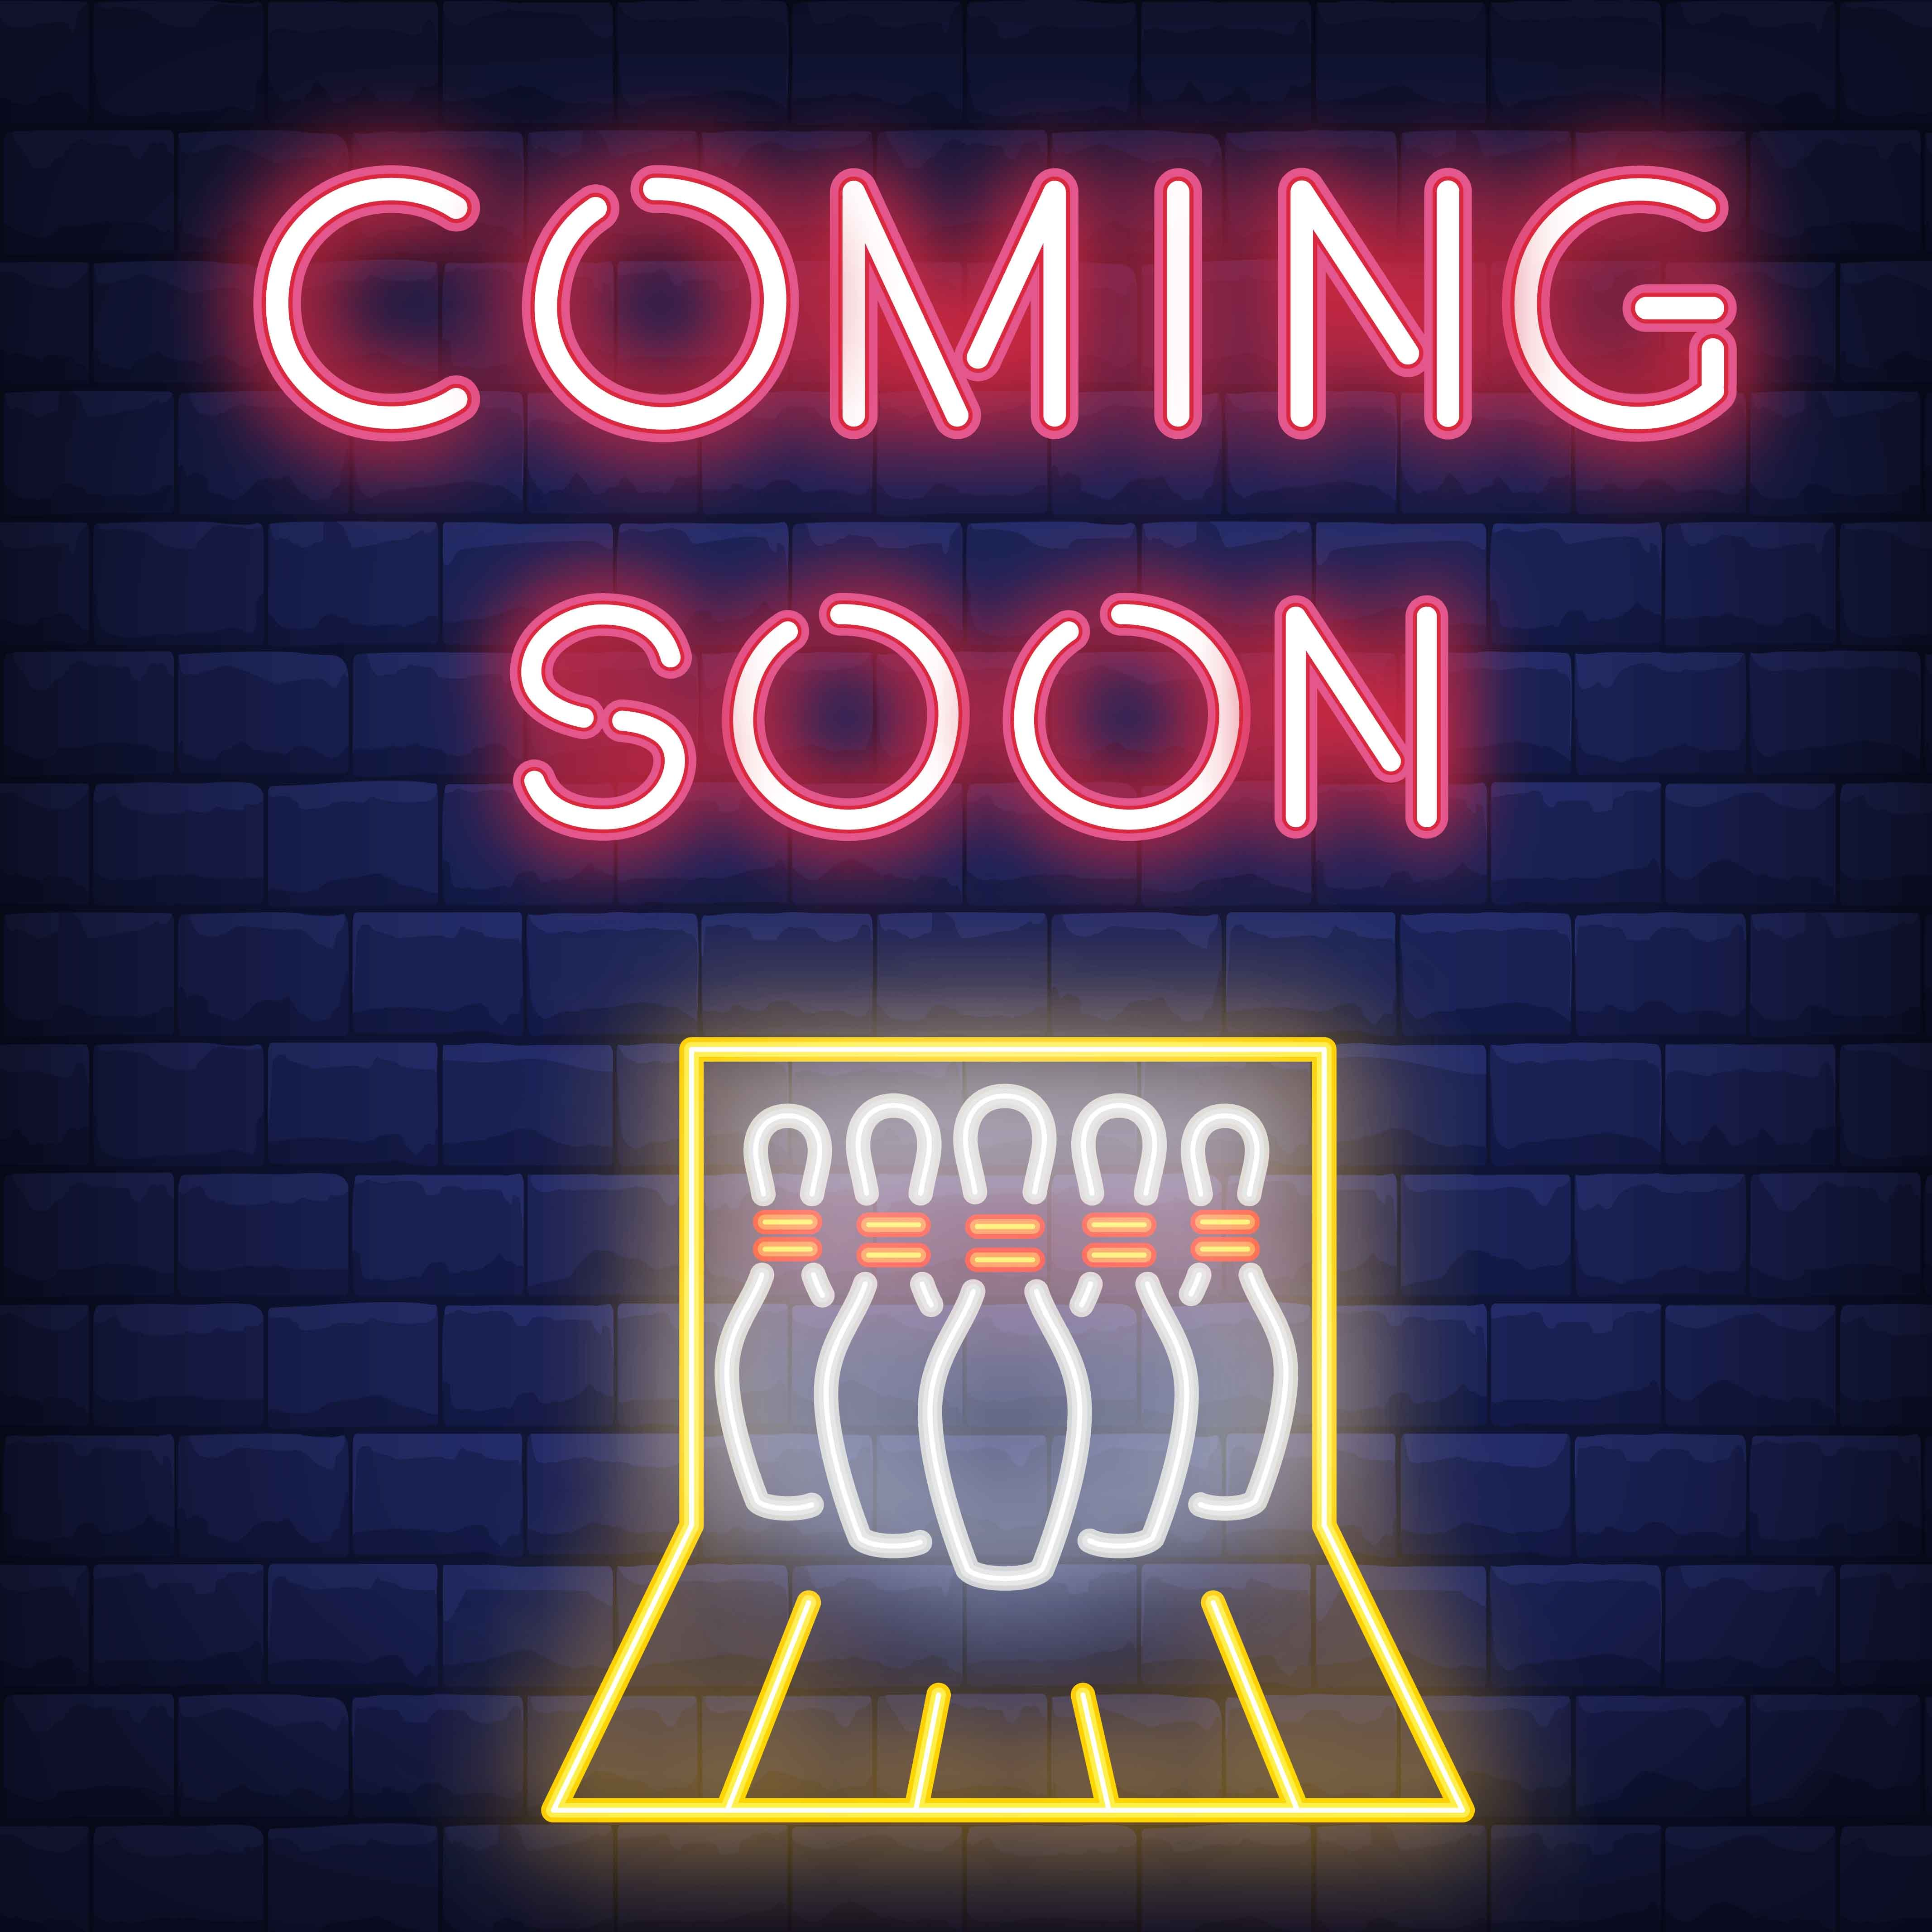 We Have Received Many Interest On Bowling So Stay Tuned For Our Upcoming Promotions Coming Soon In 2020 Neon Signs Coming Soon Interesting Things